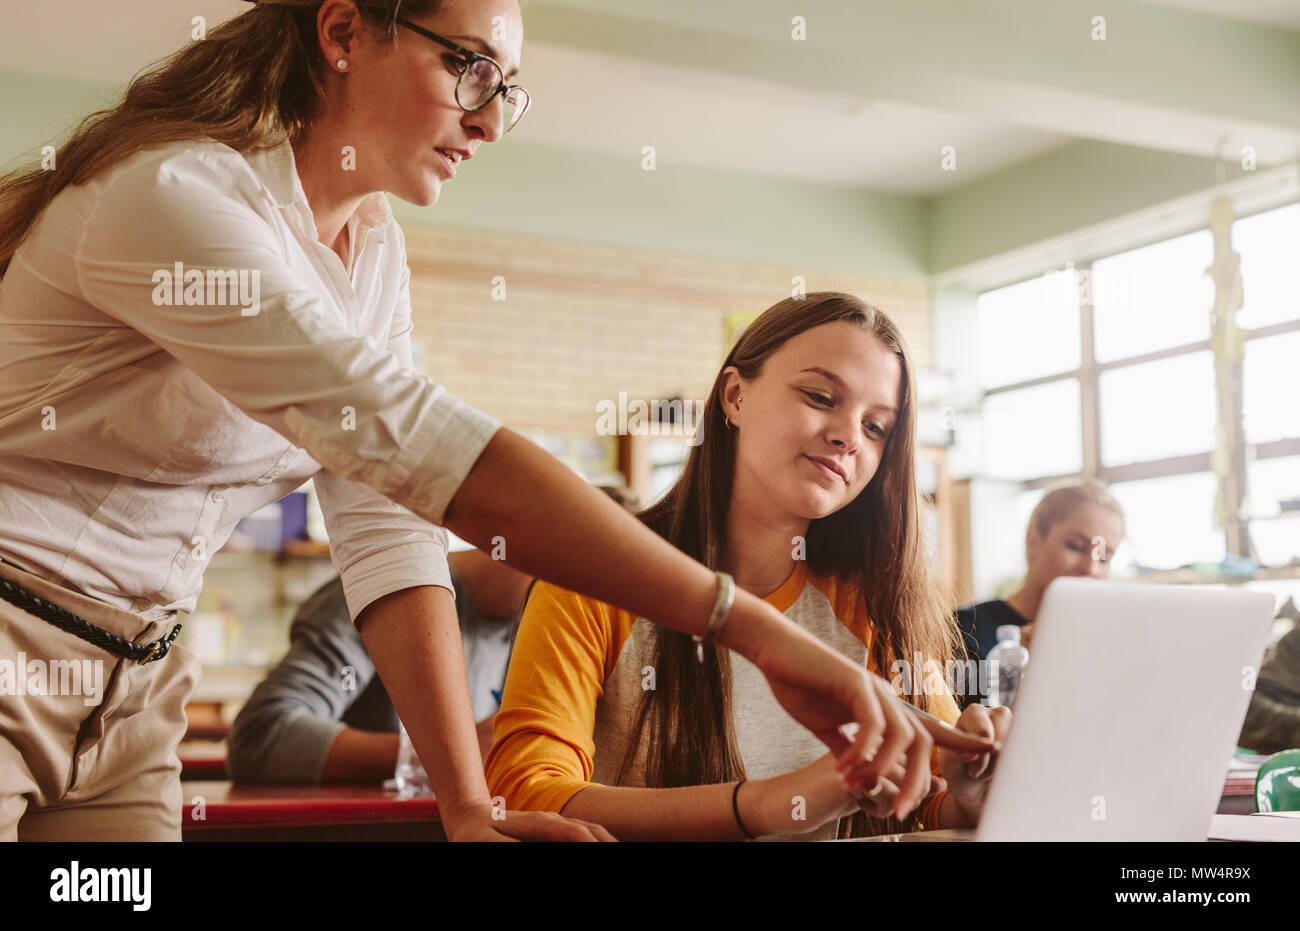 Teacher helping student in classroom. Lecturer pointing at laptop screen and showing something to female student. - Stock Image